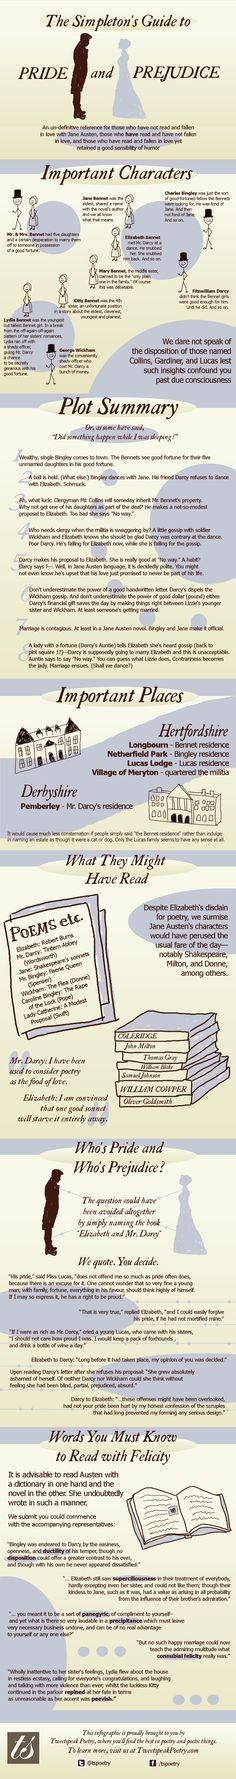 The Simpleton's Guide to Pride and Prejudice | Pride & Prejudice - Fun Infographic from Tweetspeak, New York, USA